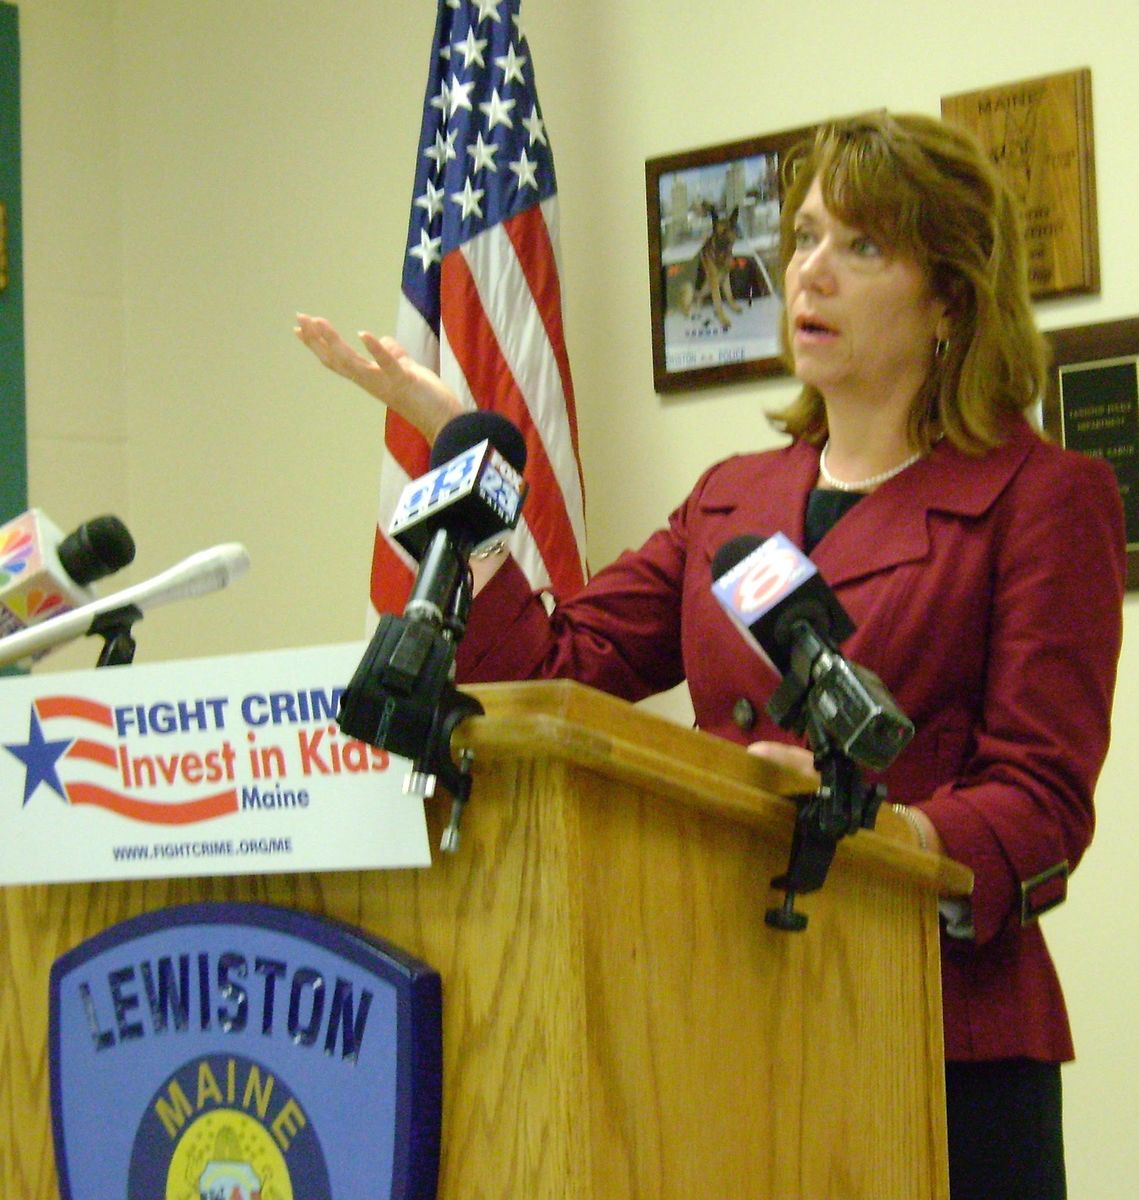 July 14, 2009: Lewiston Maine press conference on increasing the federal CTC